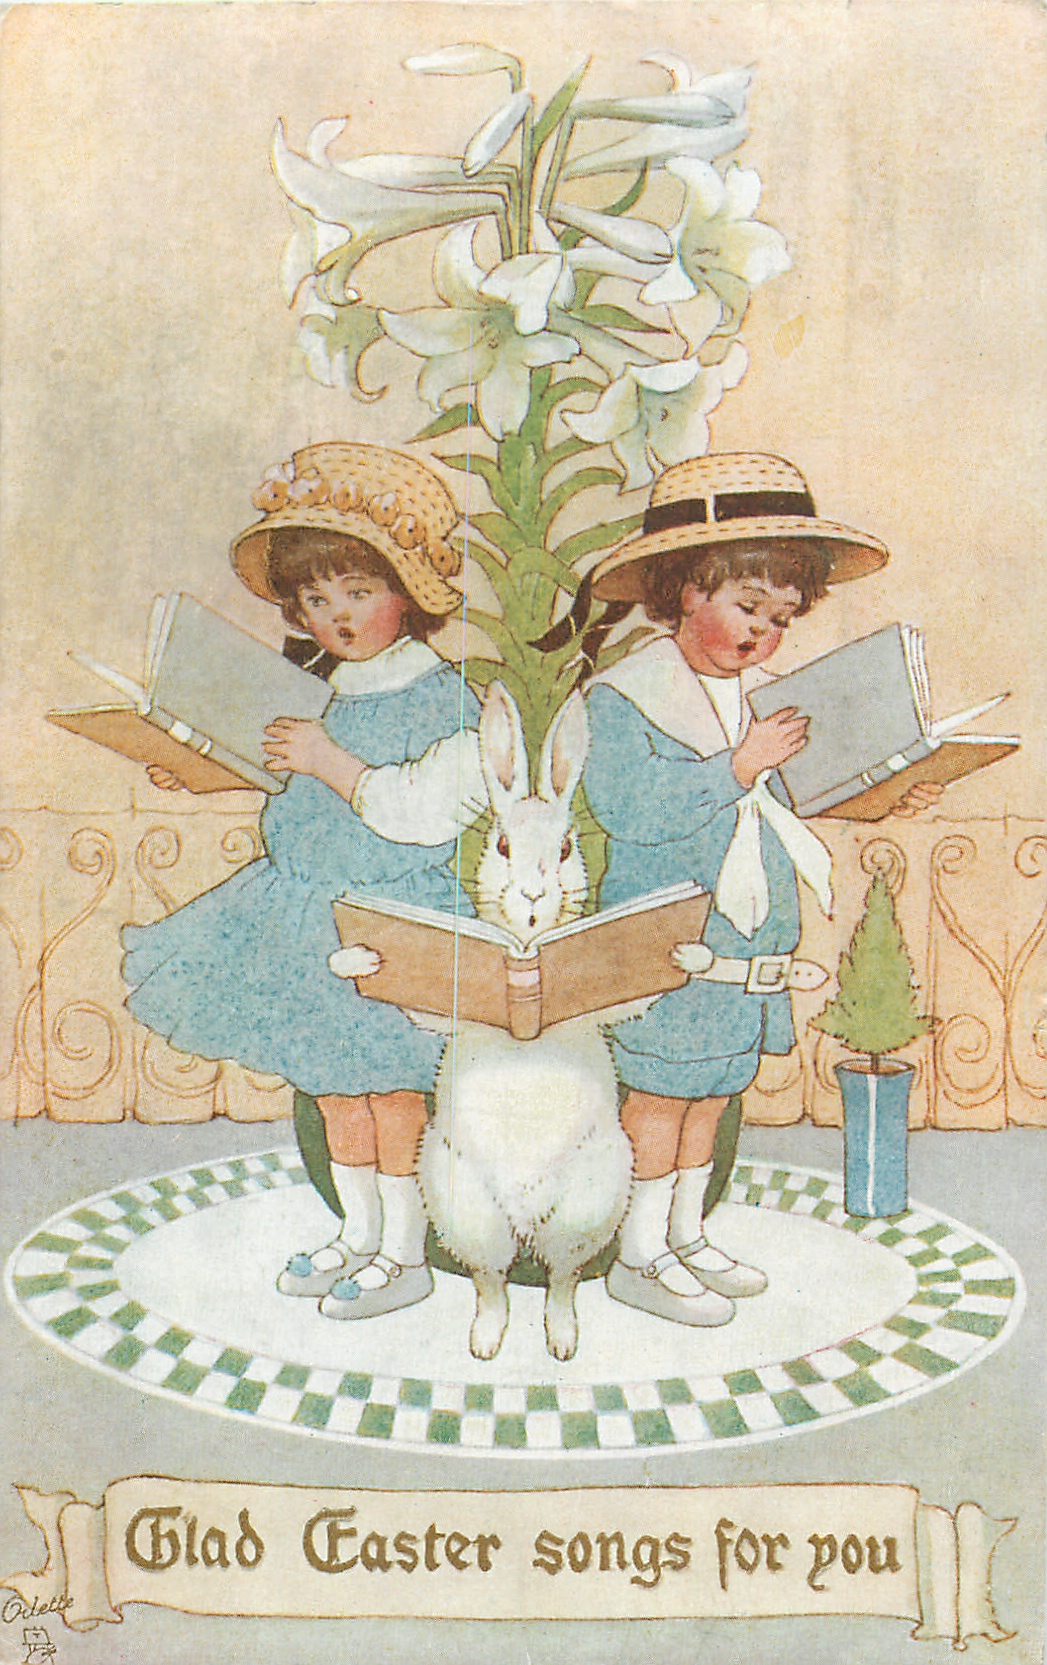 glad easter songs for you two children  u0026 rabbit stand